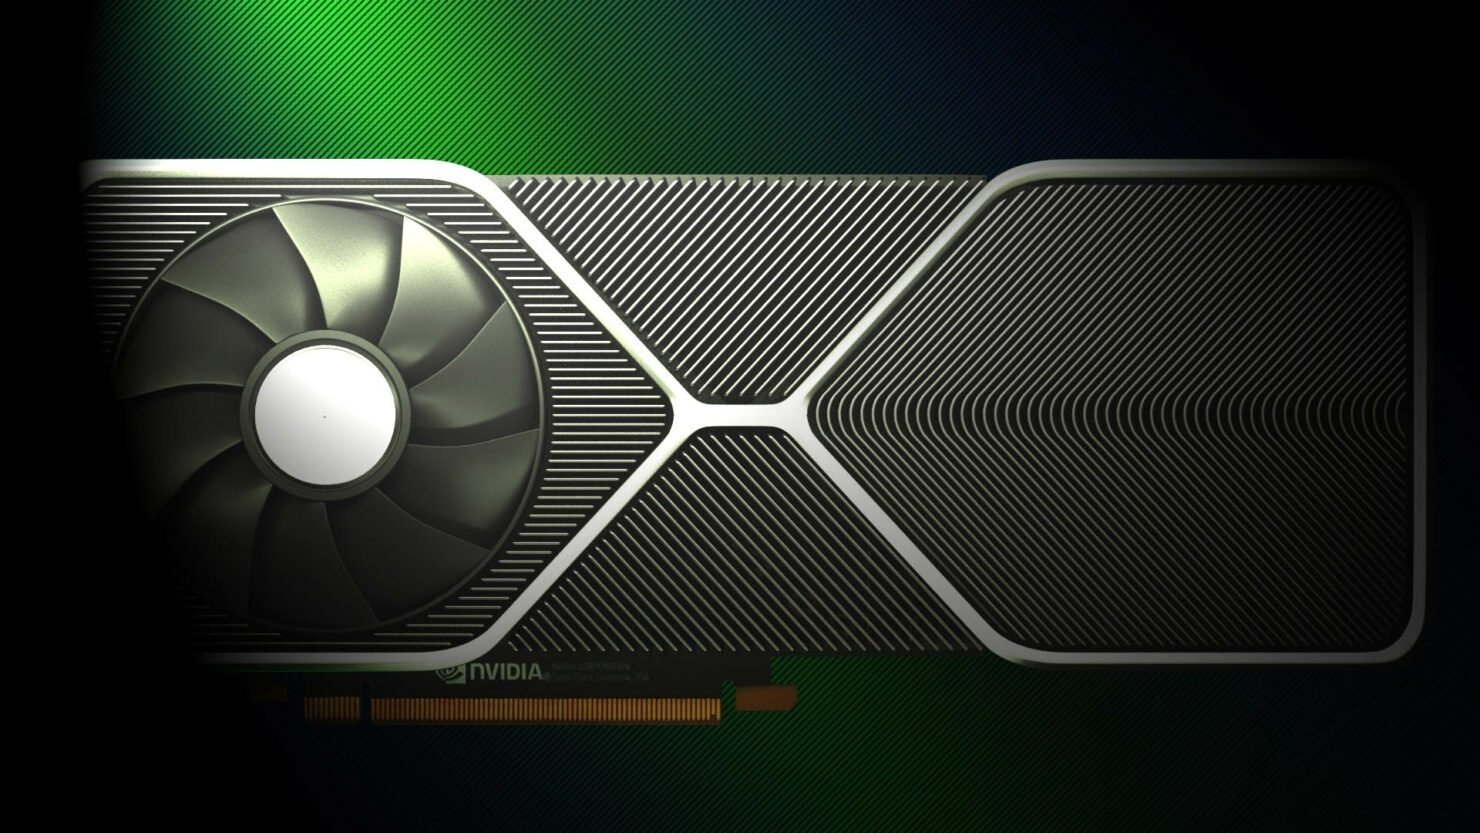 74403_05_nvidia-teases-ultimate-countdown-for-ampere-geforce-rtx-30-series_full.jpg